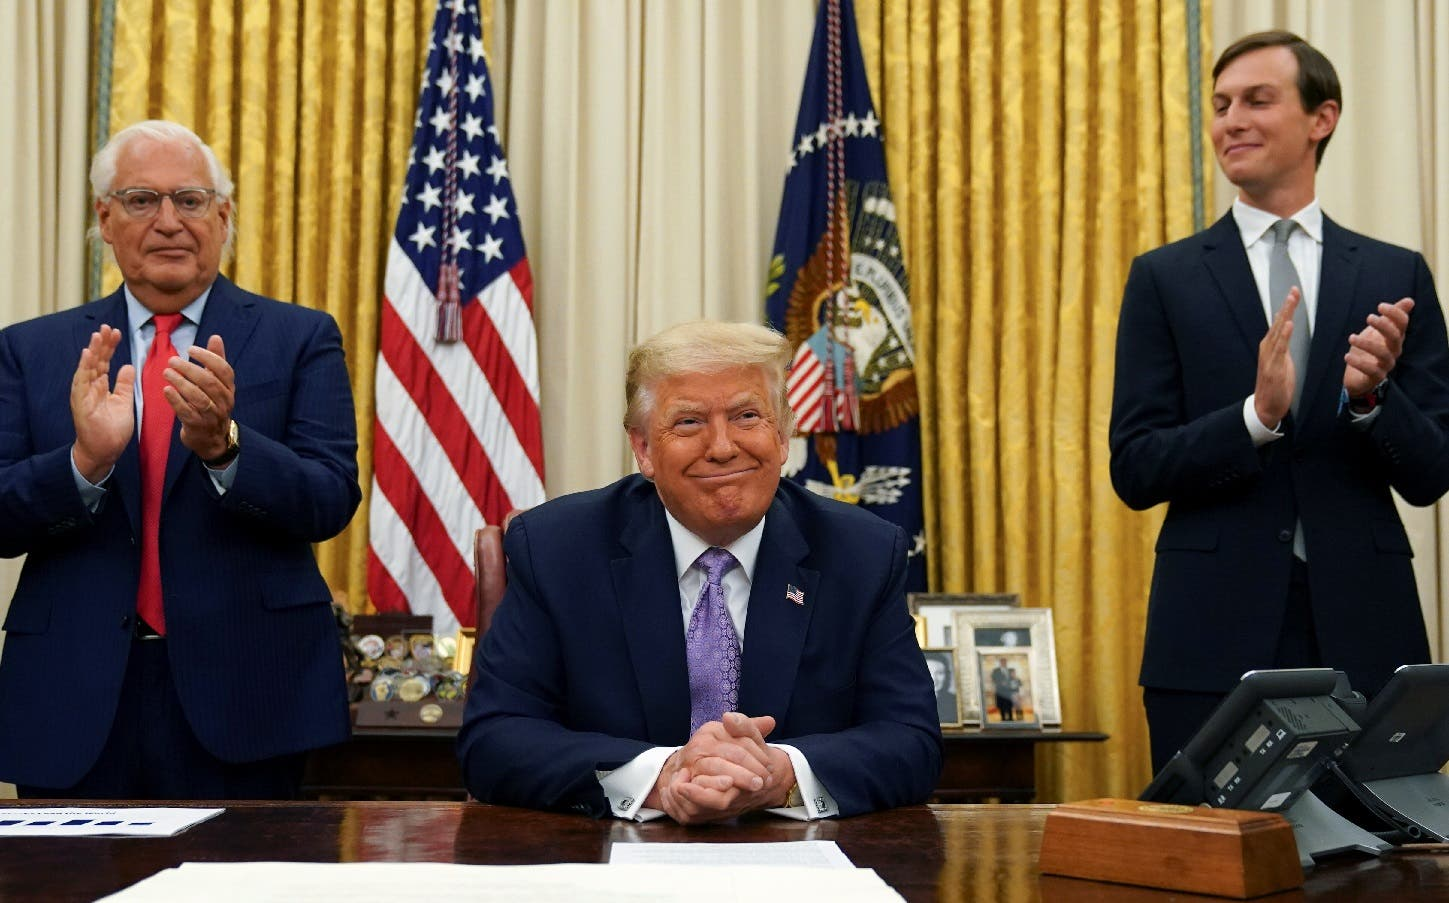 US Ambassador to Israel David Melech Friedman and White House senior adviser Jared Kushner applaud after US President Donald Trump announced a peace deal between Israel and the UAE from the Oval Office of the White House in Washington, US, August 13, 2020. (Reuters)